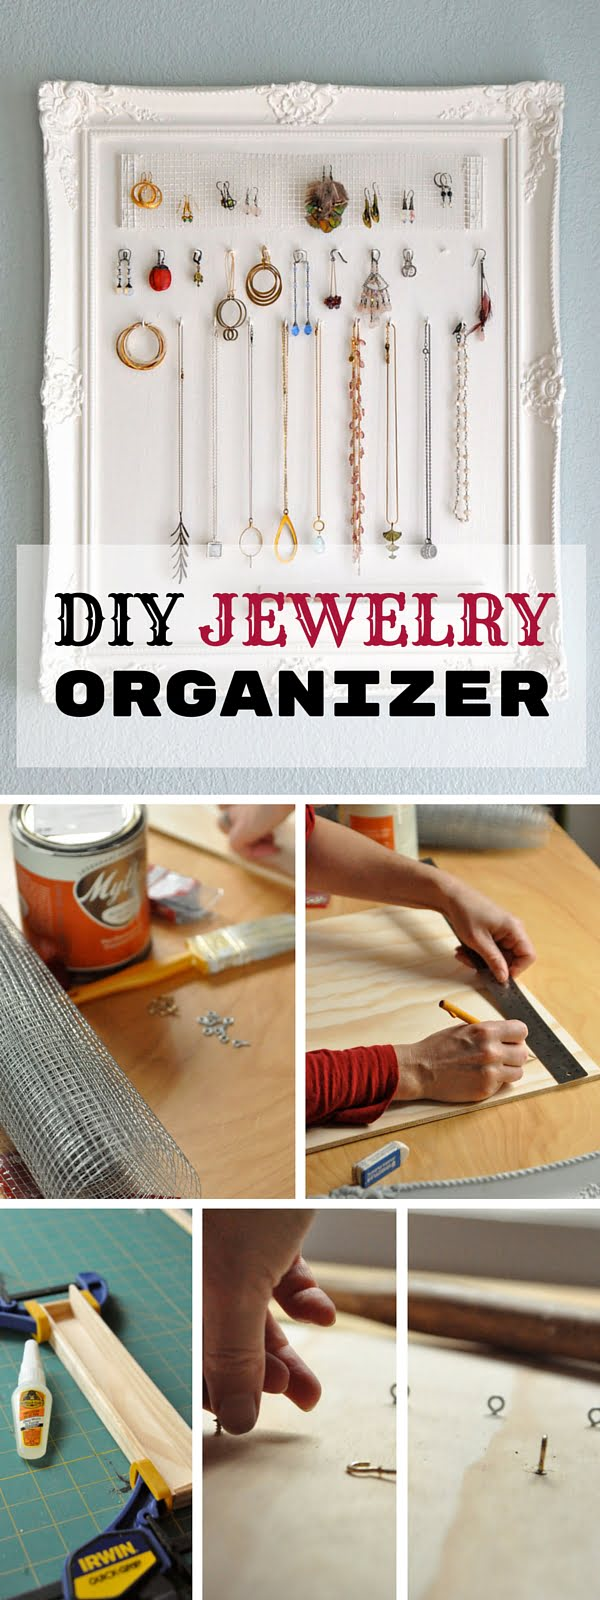 Check out the tutorial: #DIY Jewelry Organizer #crafts #homedecor